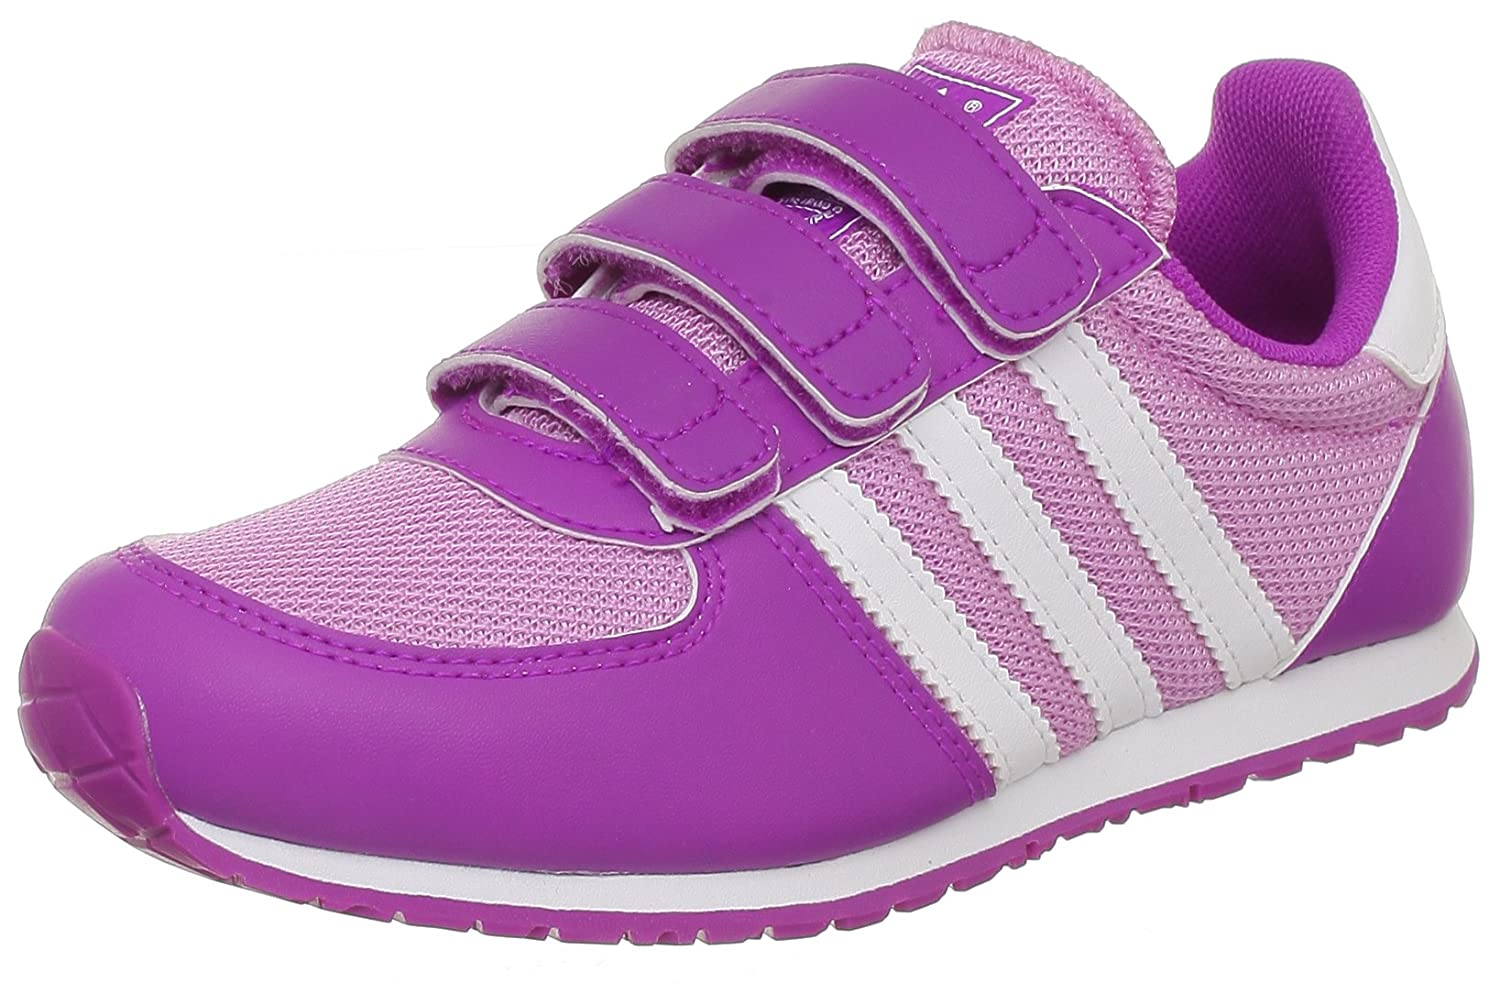 adidas Originals Adistar Racer Cf C, Baskets mode mixte enfant - Rose  (Vivid Pink S13), 35 EU  Amazon.fr  Chaussures et Sacs 3df120a73863